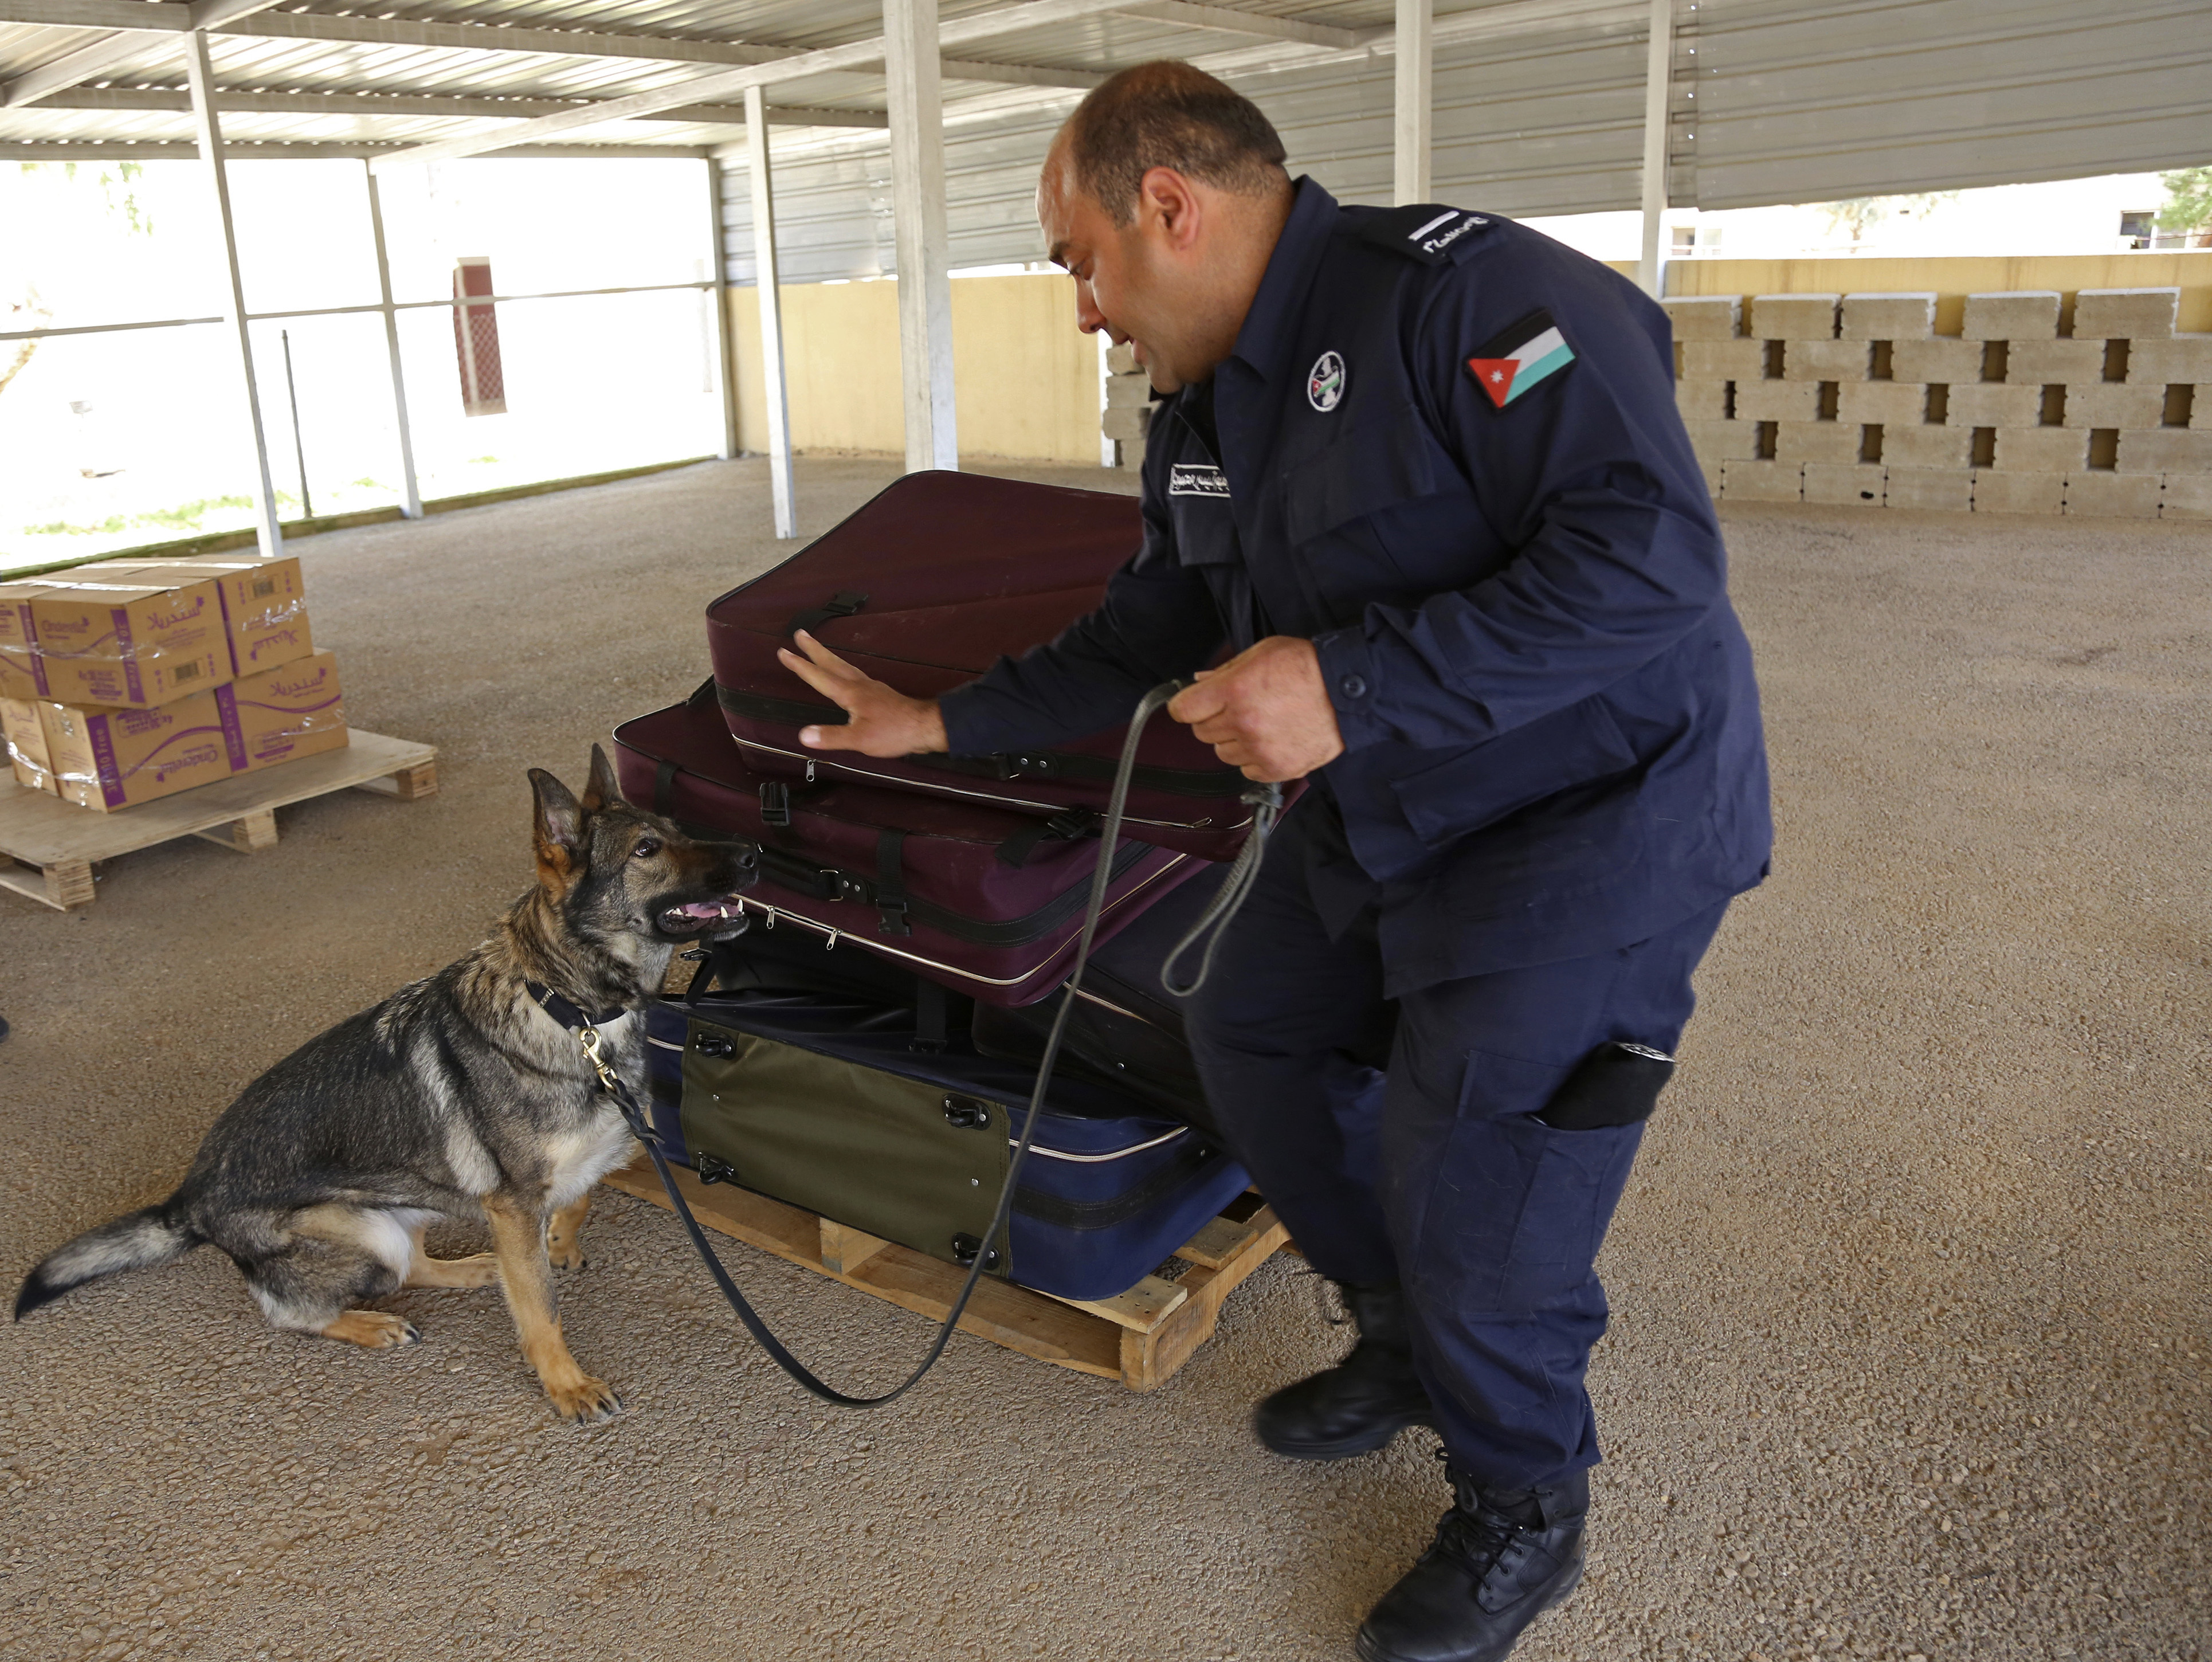 A handler from the K-9 unit of Jordan's police directs an explosives-sniffing German shepherd during a drill in which C4 plastic explosives were hidden in a suitcase meant to simulate airport luggage checks, in Amman Jordan, on March 19, 2018. (Raad Adayleh/AP)